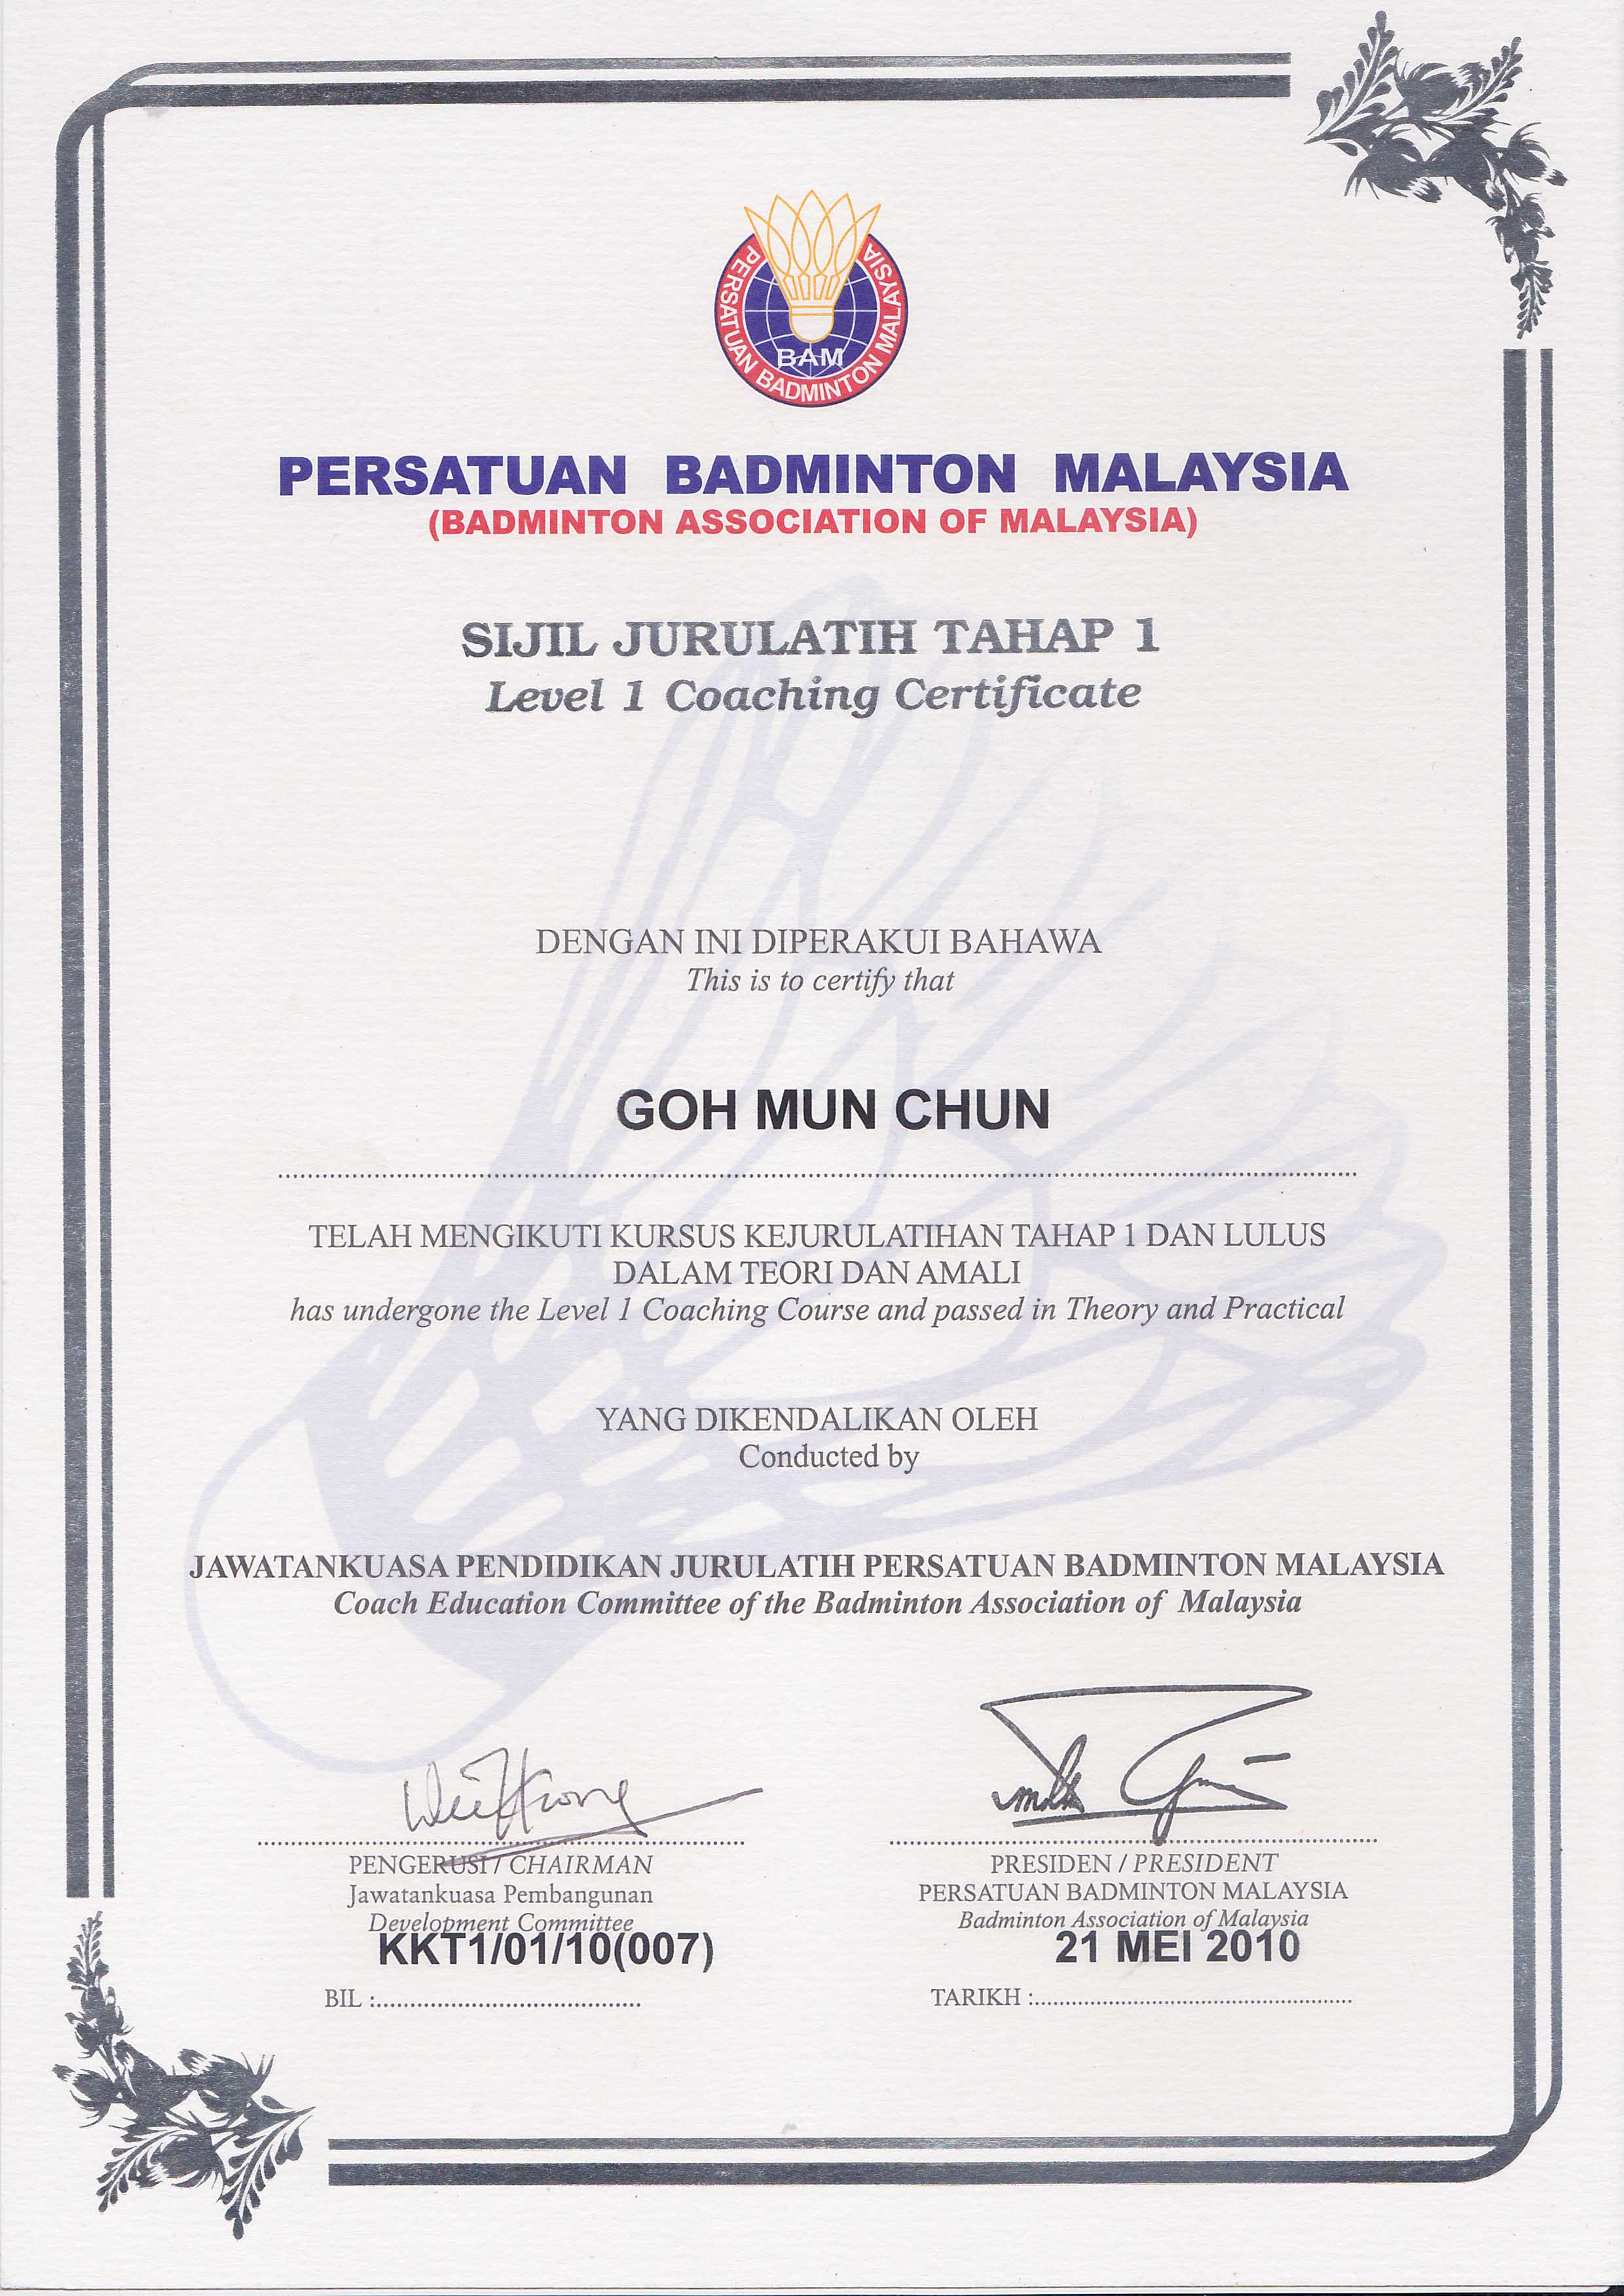 Yap twins sport management ytsm malaysias premier badminton certification bam certificate level 1 coaching course theory and practicle xflitez Choice Image